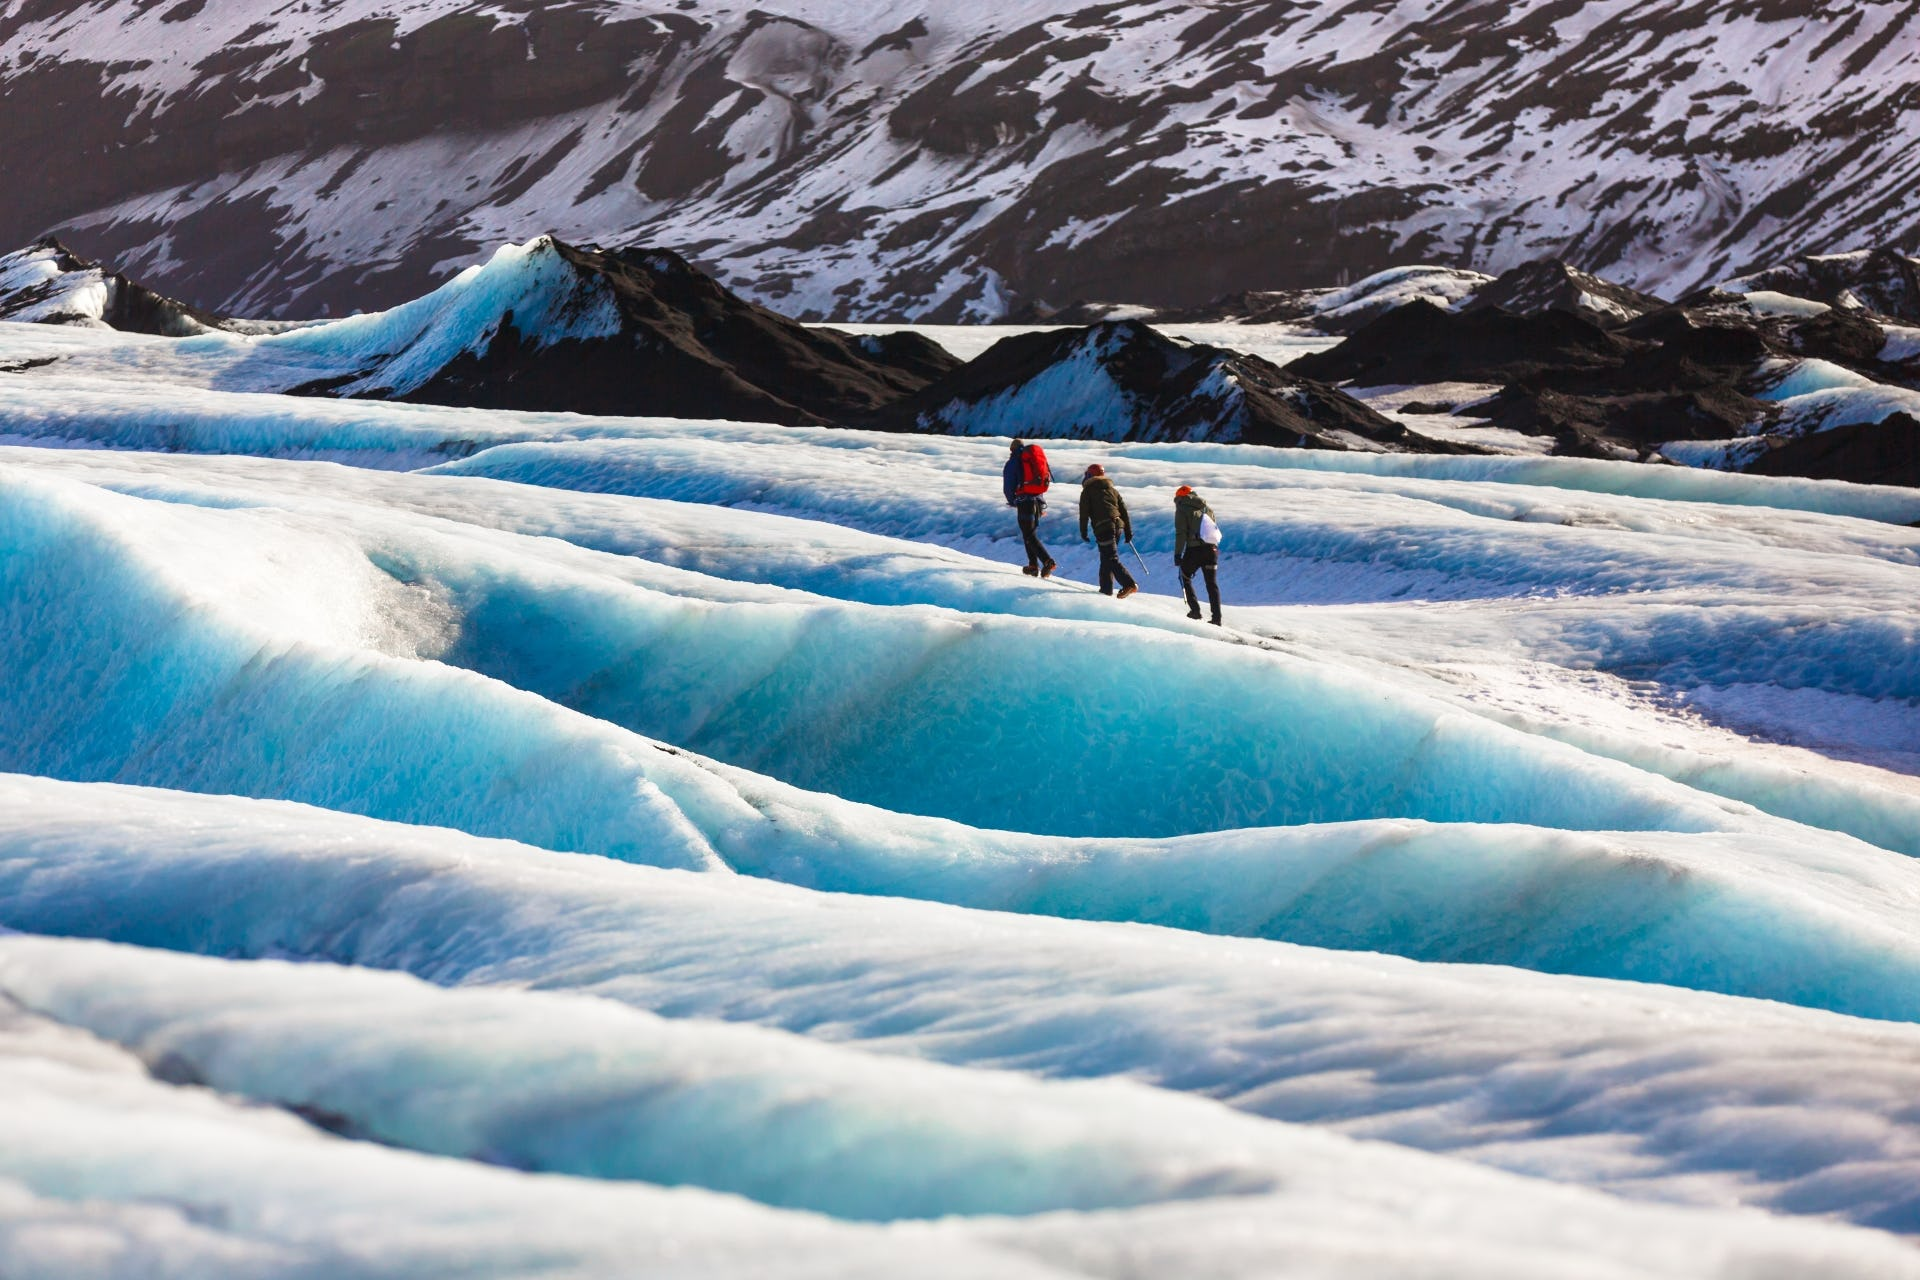 Hike on top of the blue ice of Sólheimajökull glacier on this exciting glacier hiking tour.